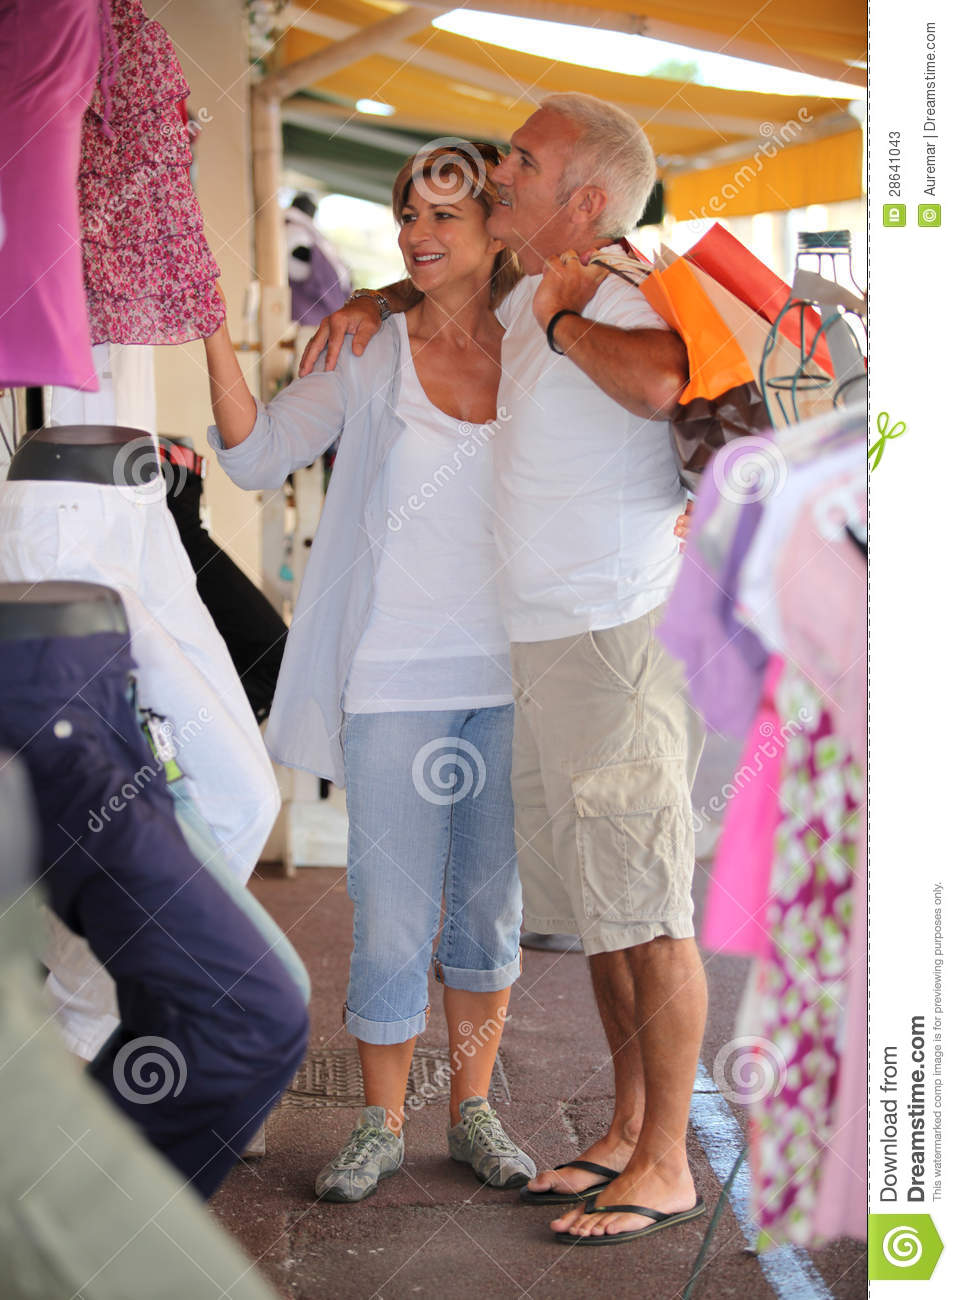 couple-clothing-store-28641043.jpg